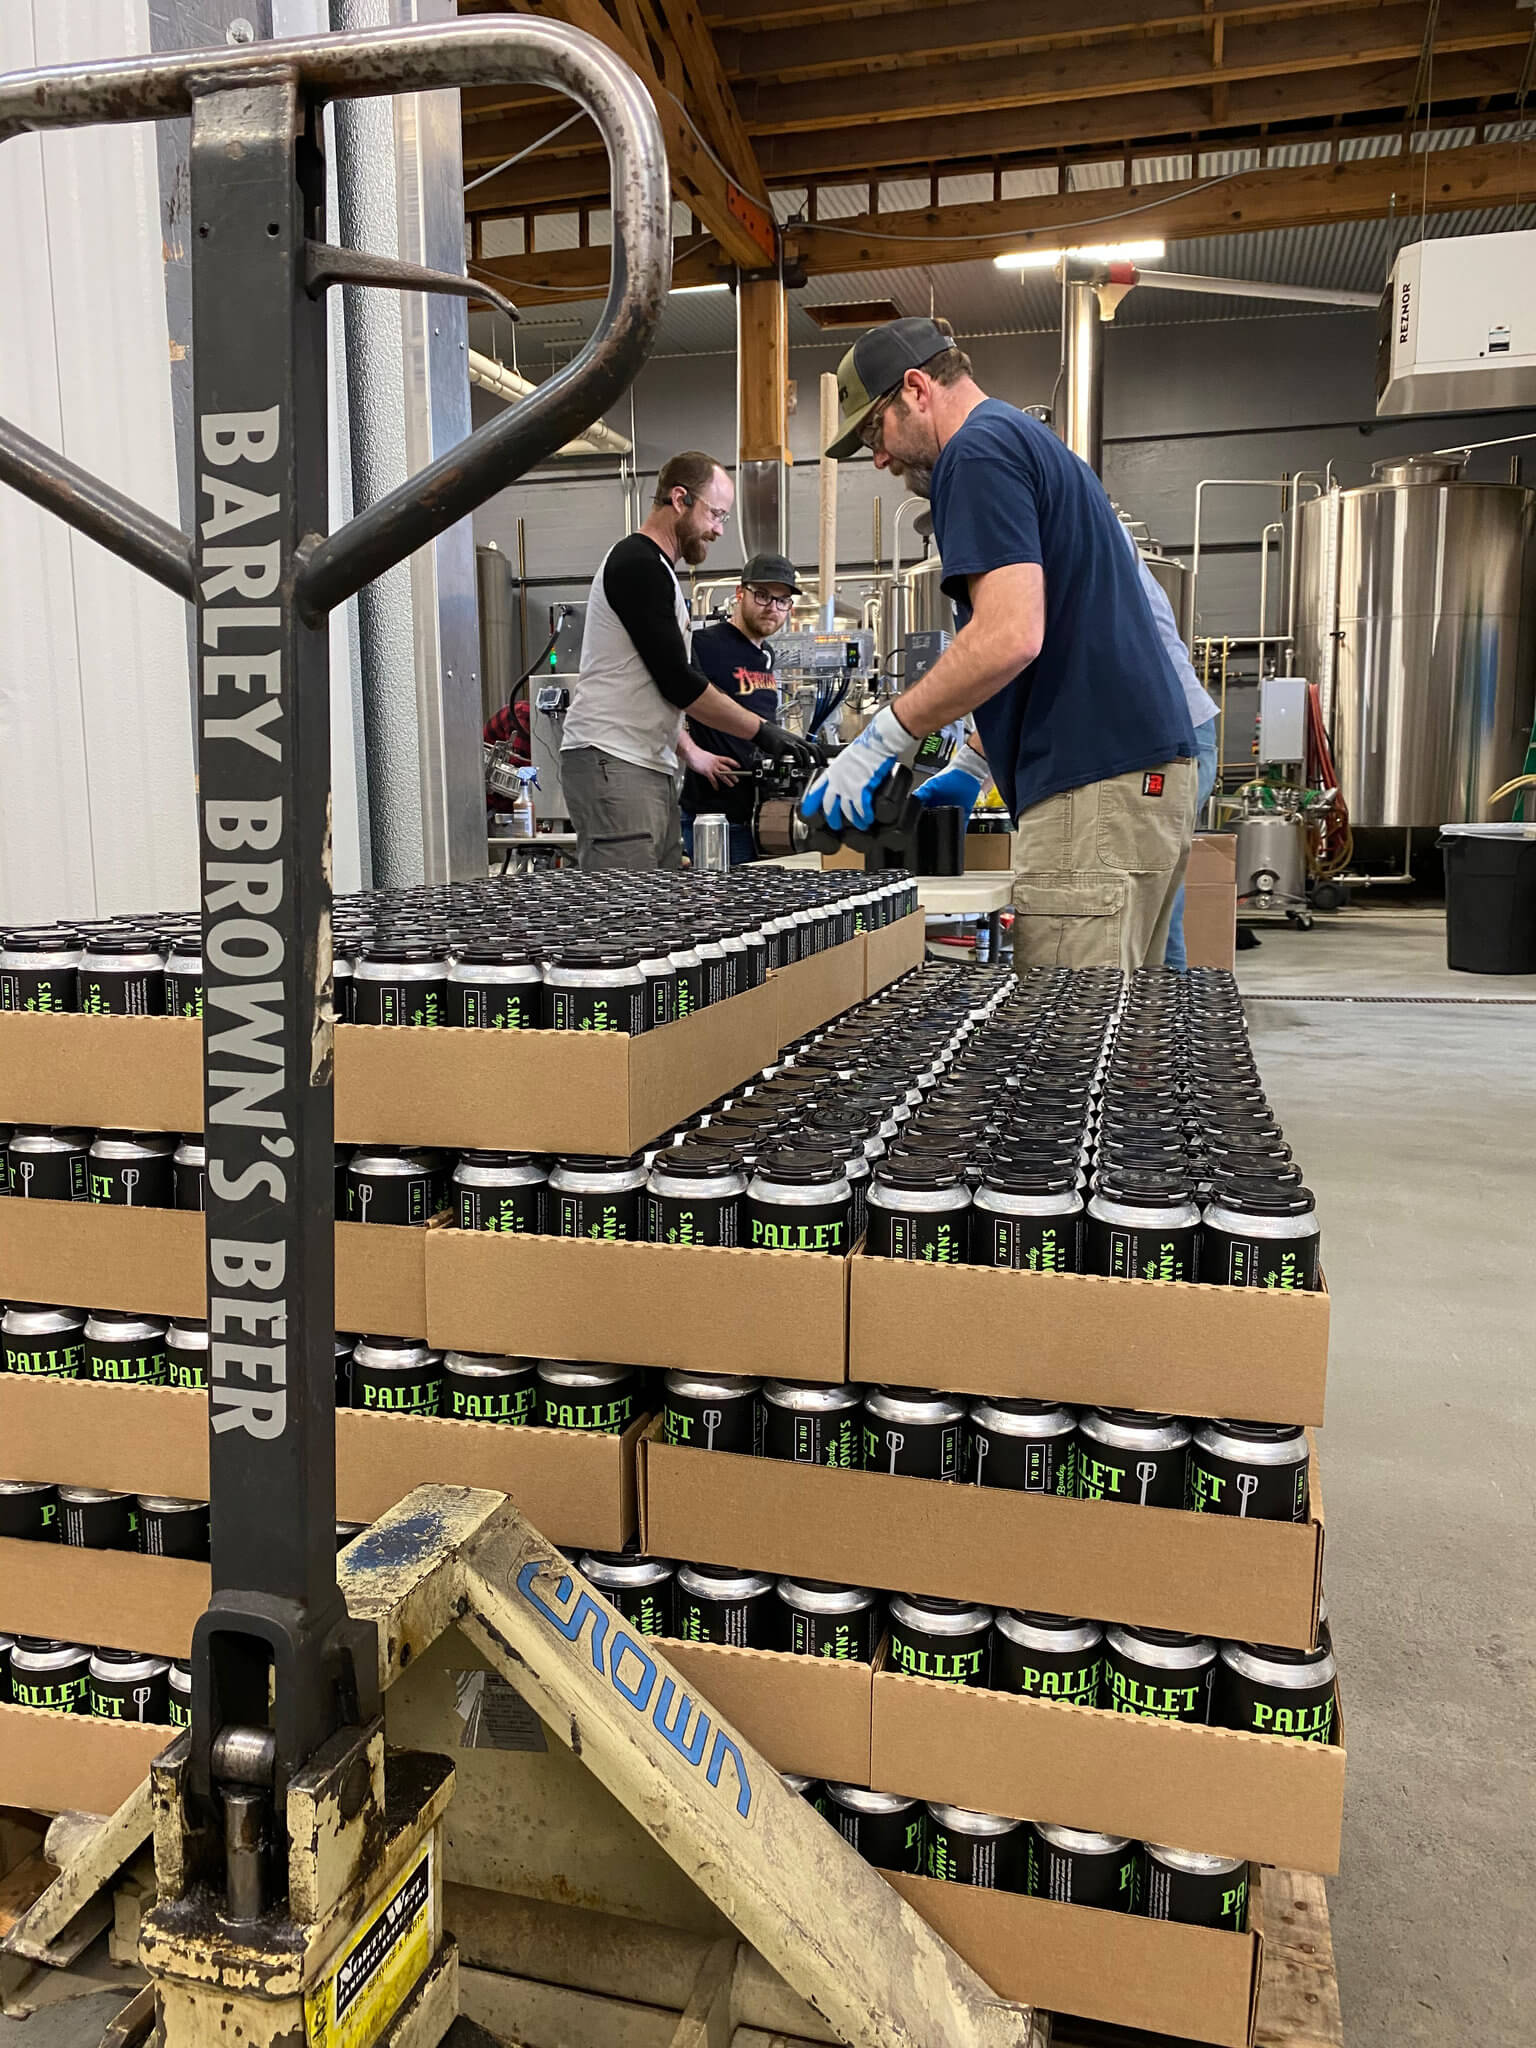 After bars and restaurants closed across Oregon in March, Barley Brown's Beer, in Baker City, decided to can its beer for the first time in its nearly 22-year history.